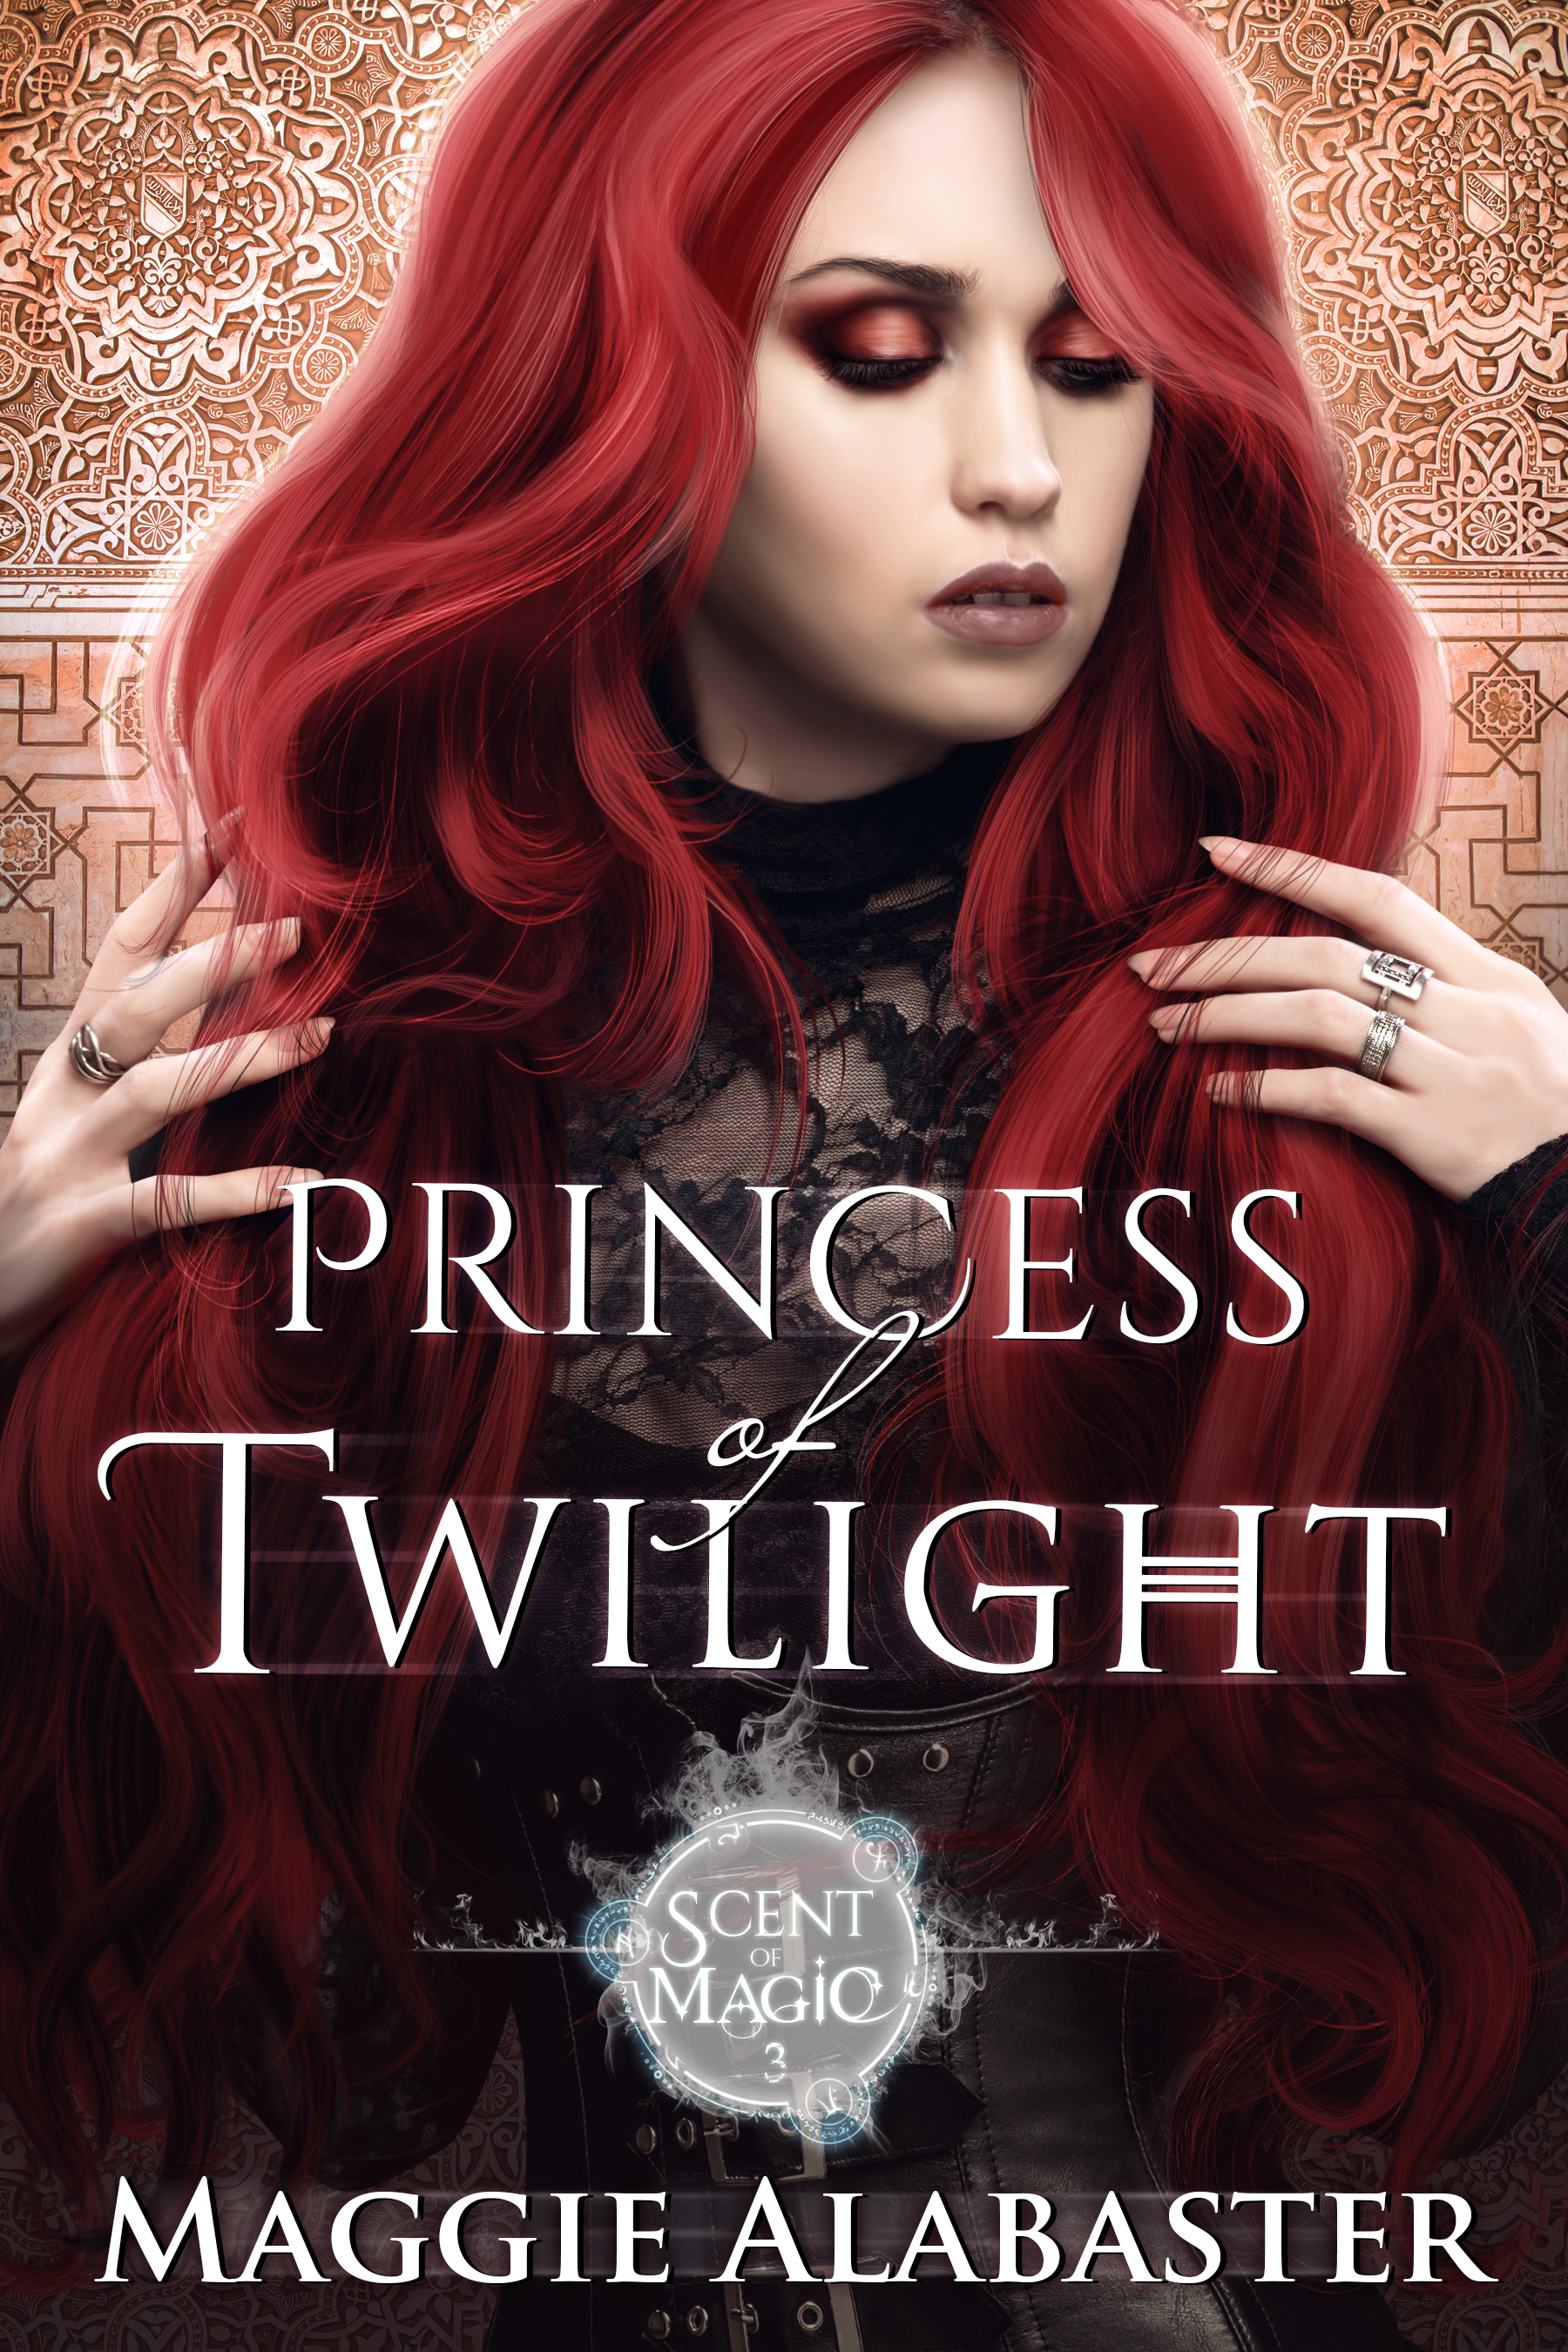 Princess of Twilight